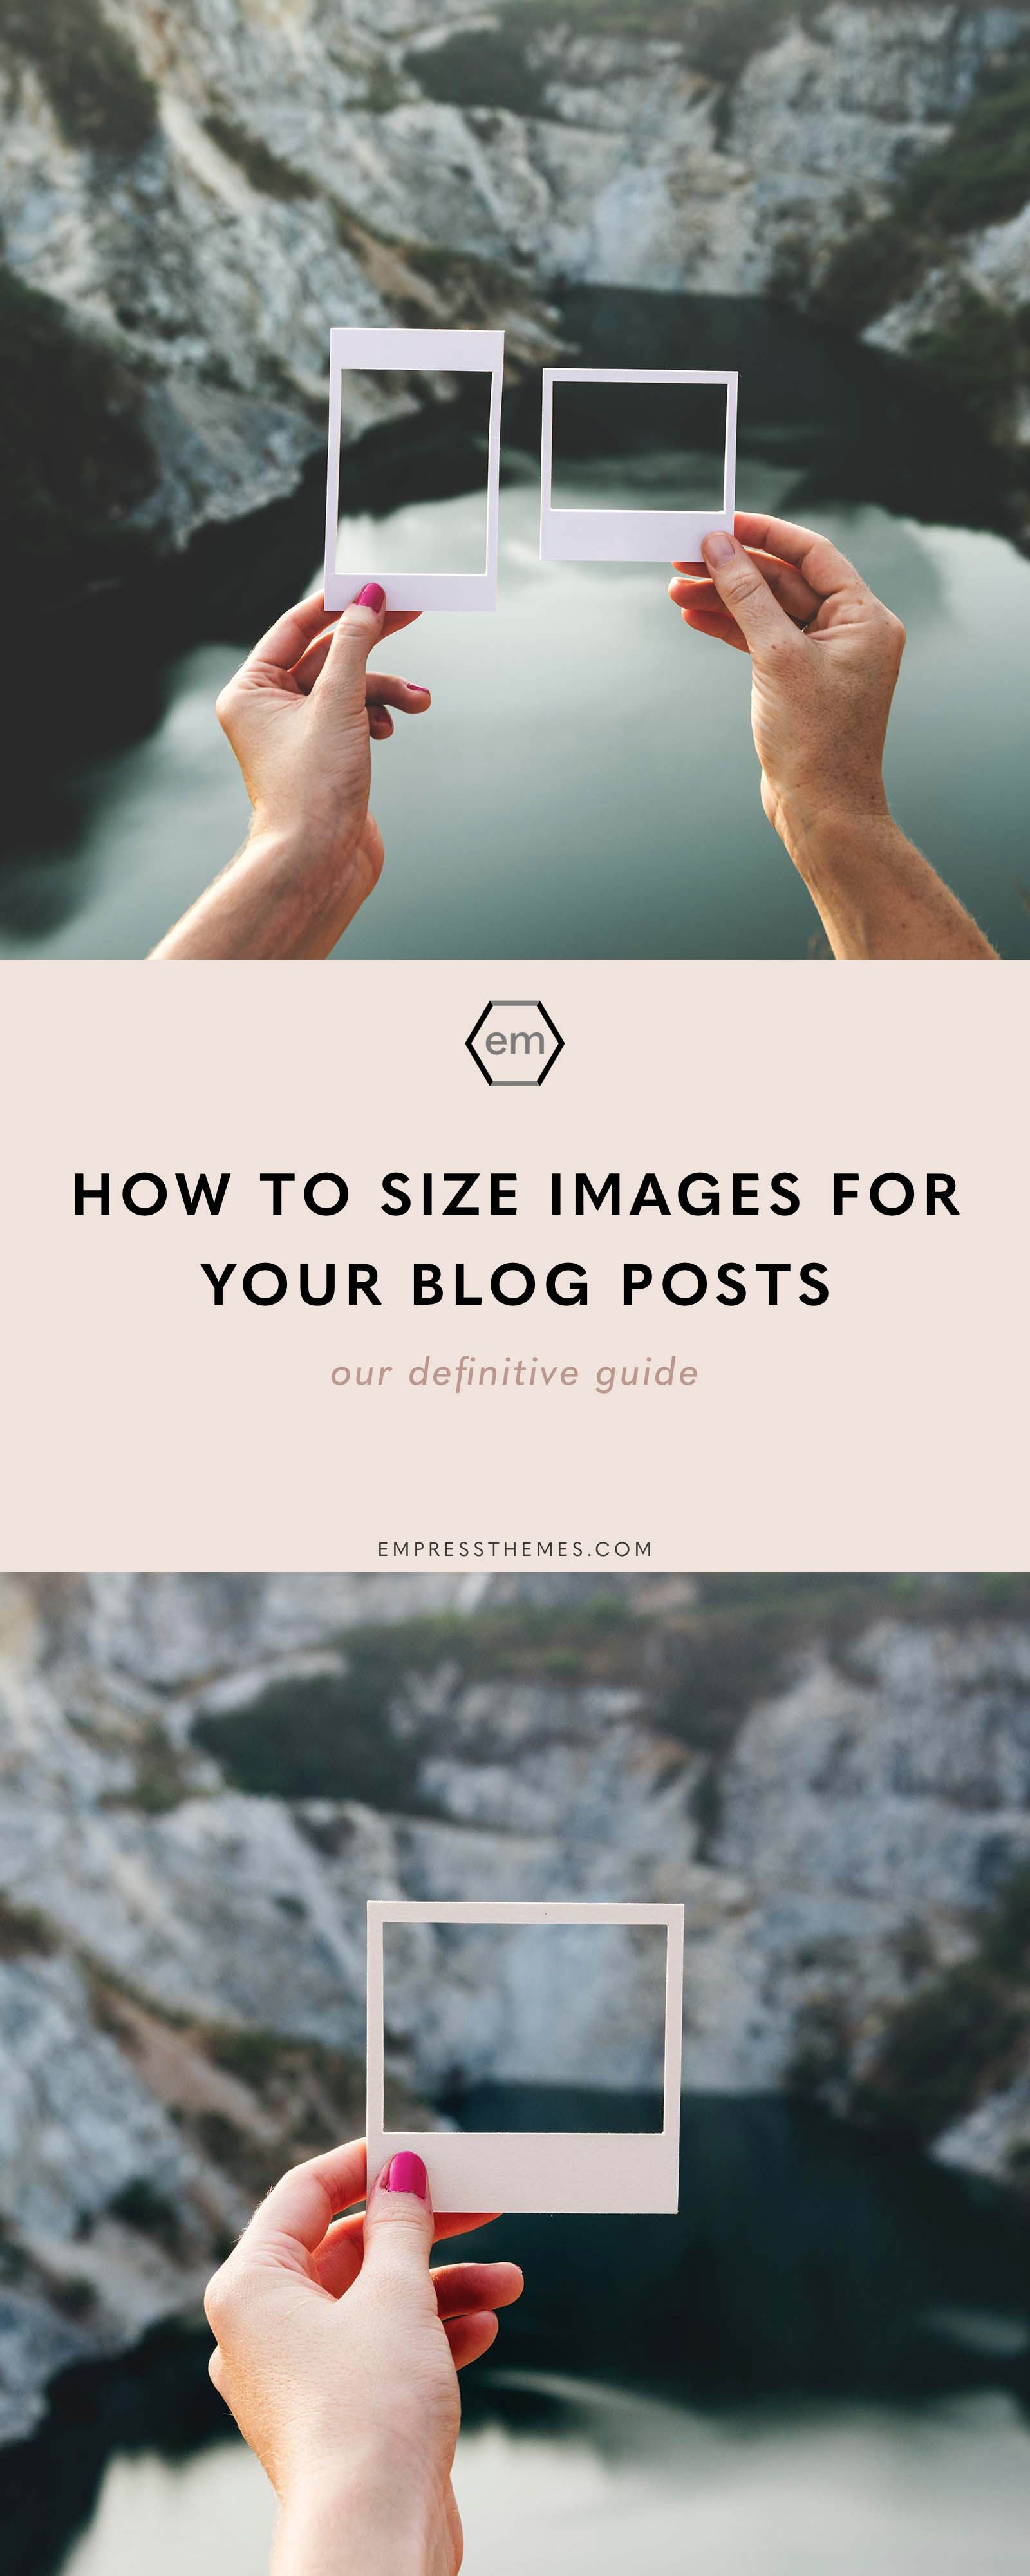 How to Size Images for Your Blog Blog, Seo tips